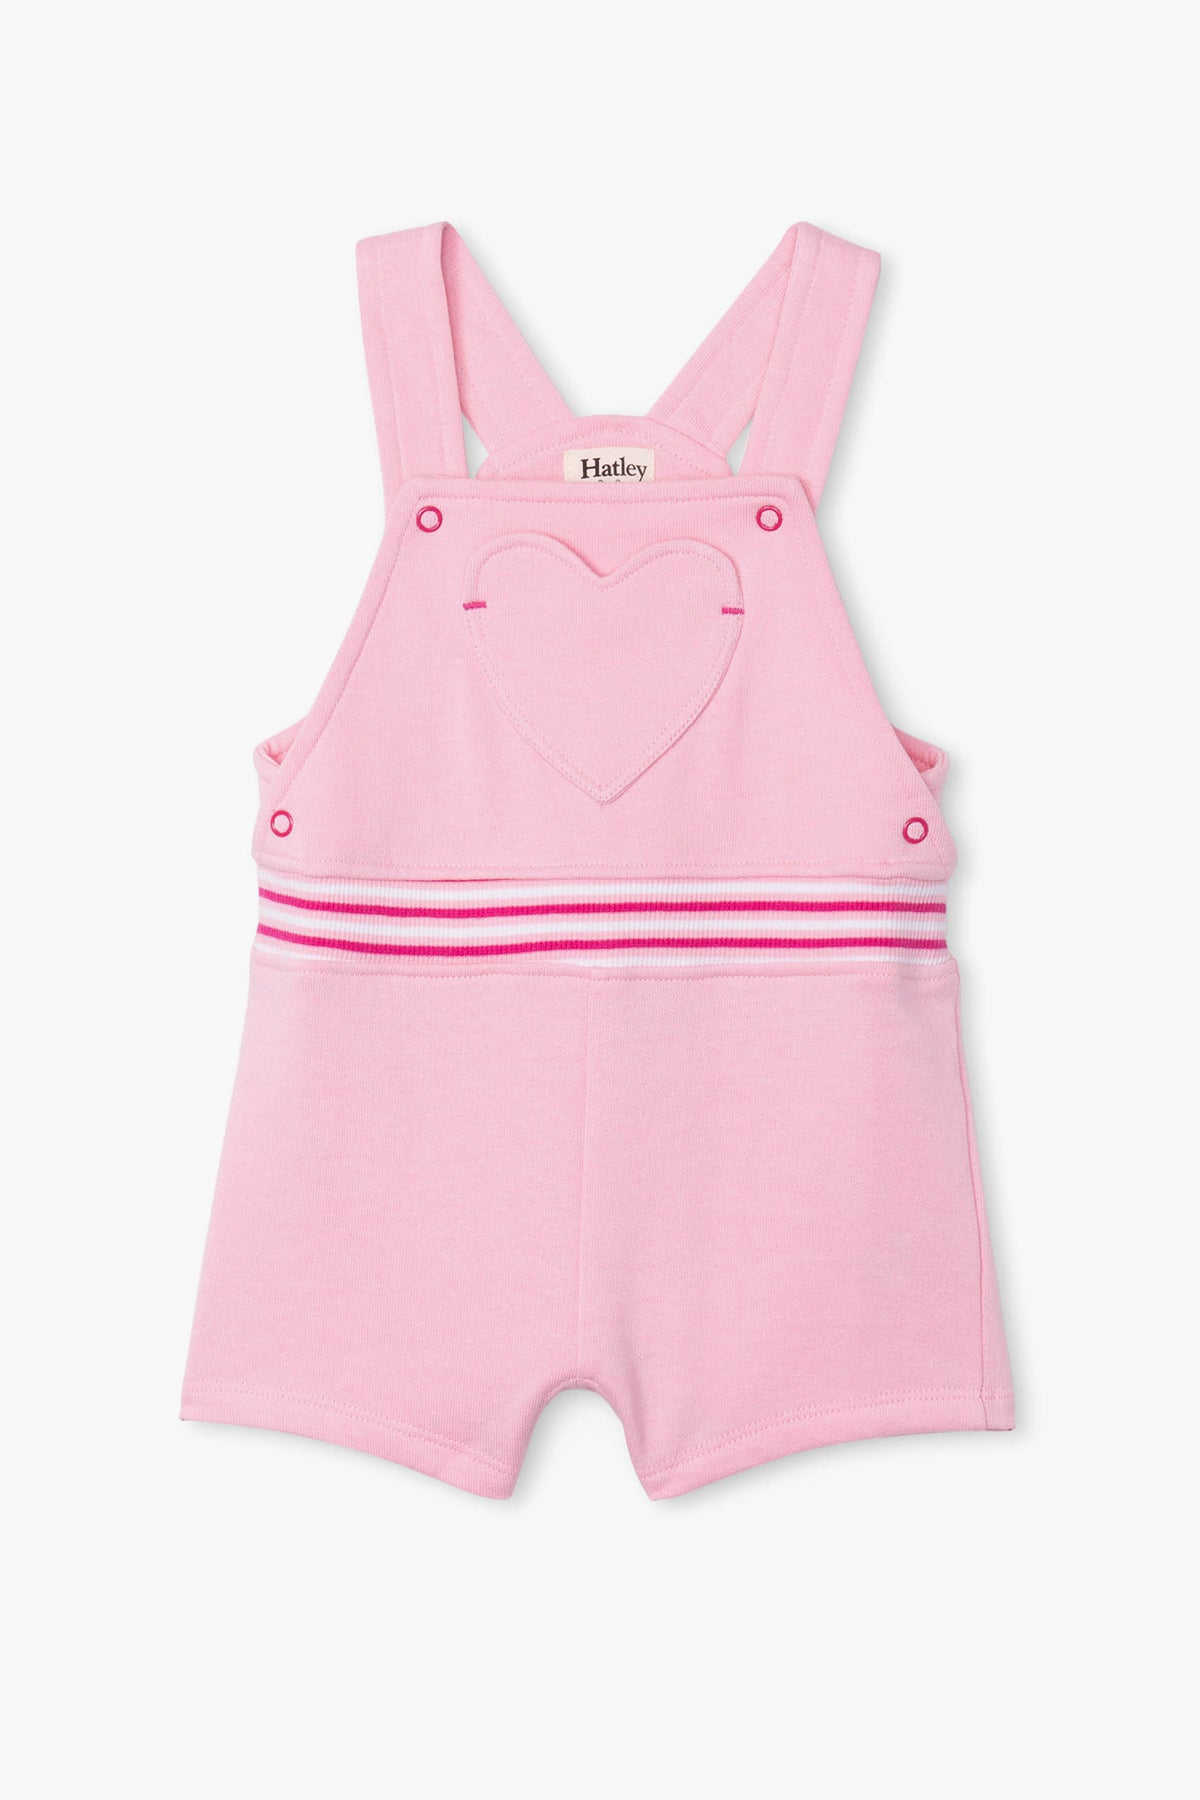 Hatley Heart Knit Baby Girls Overalls